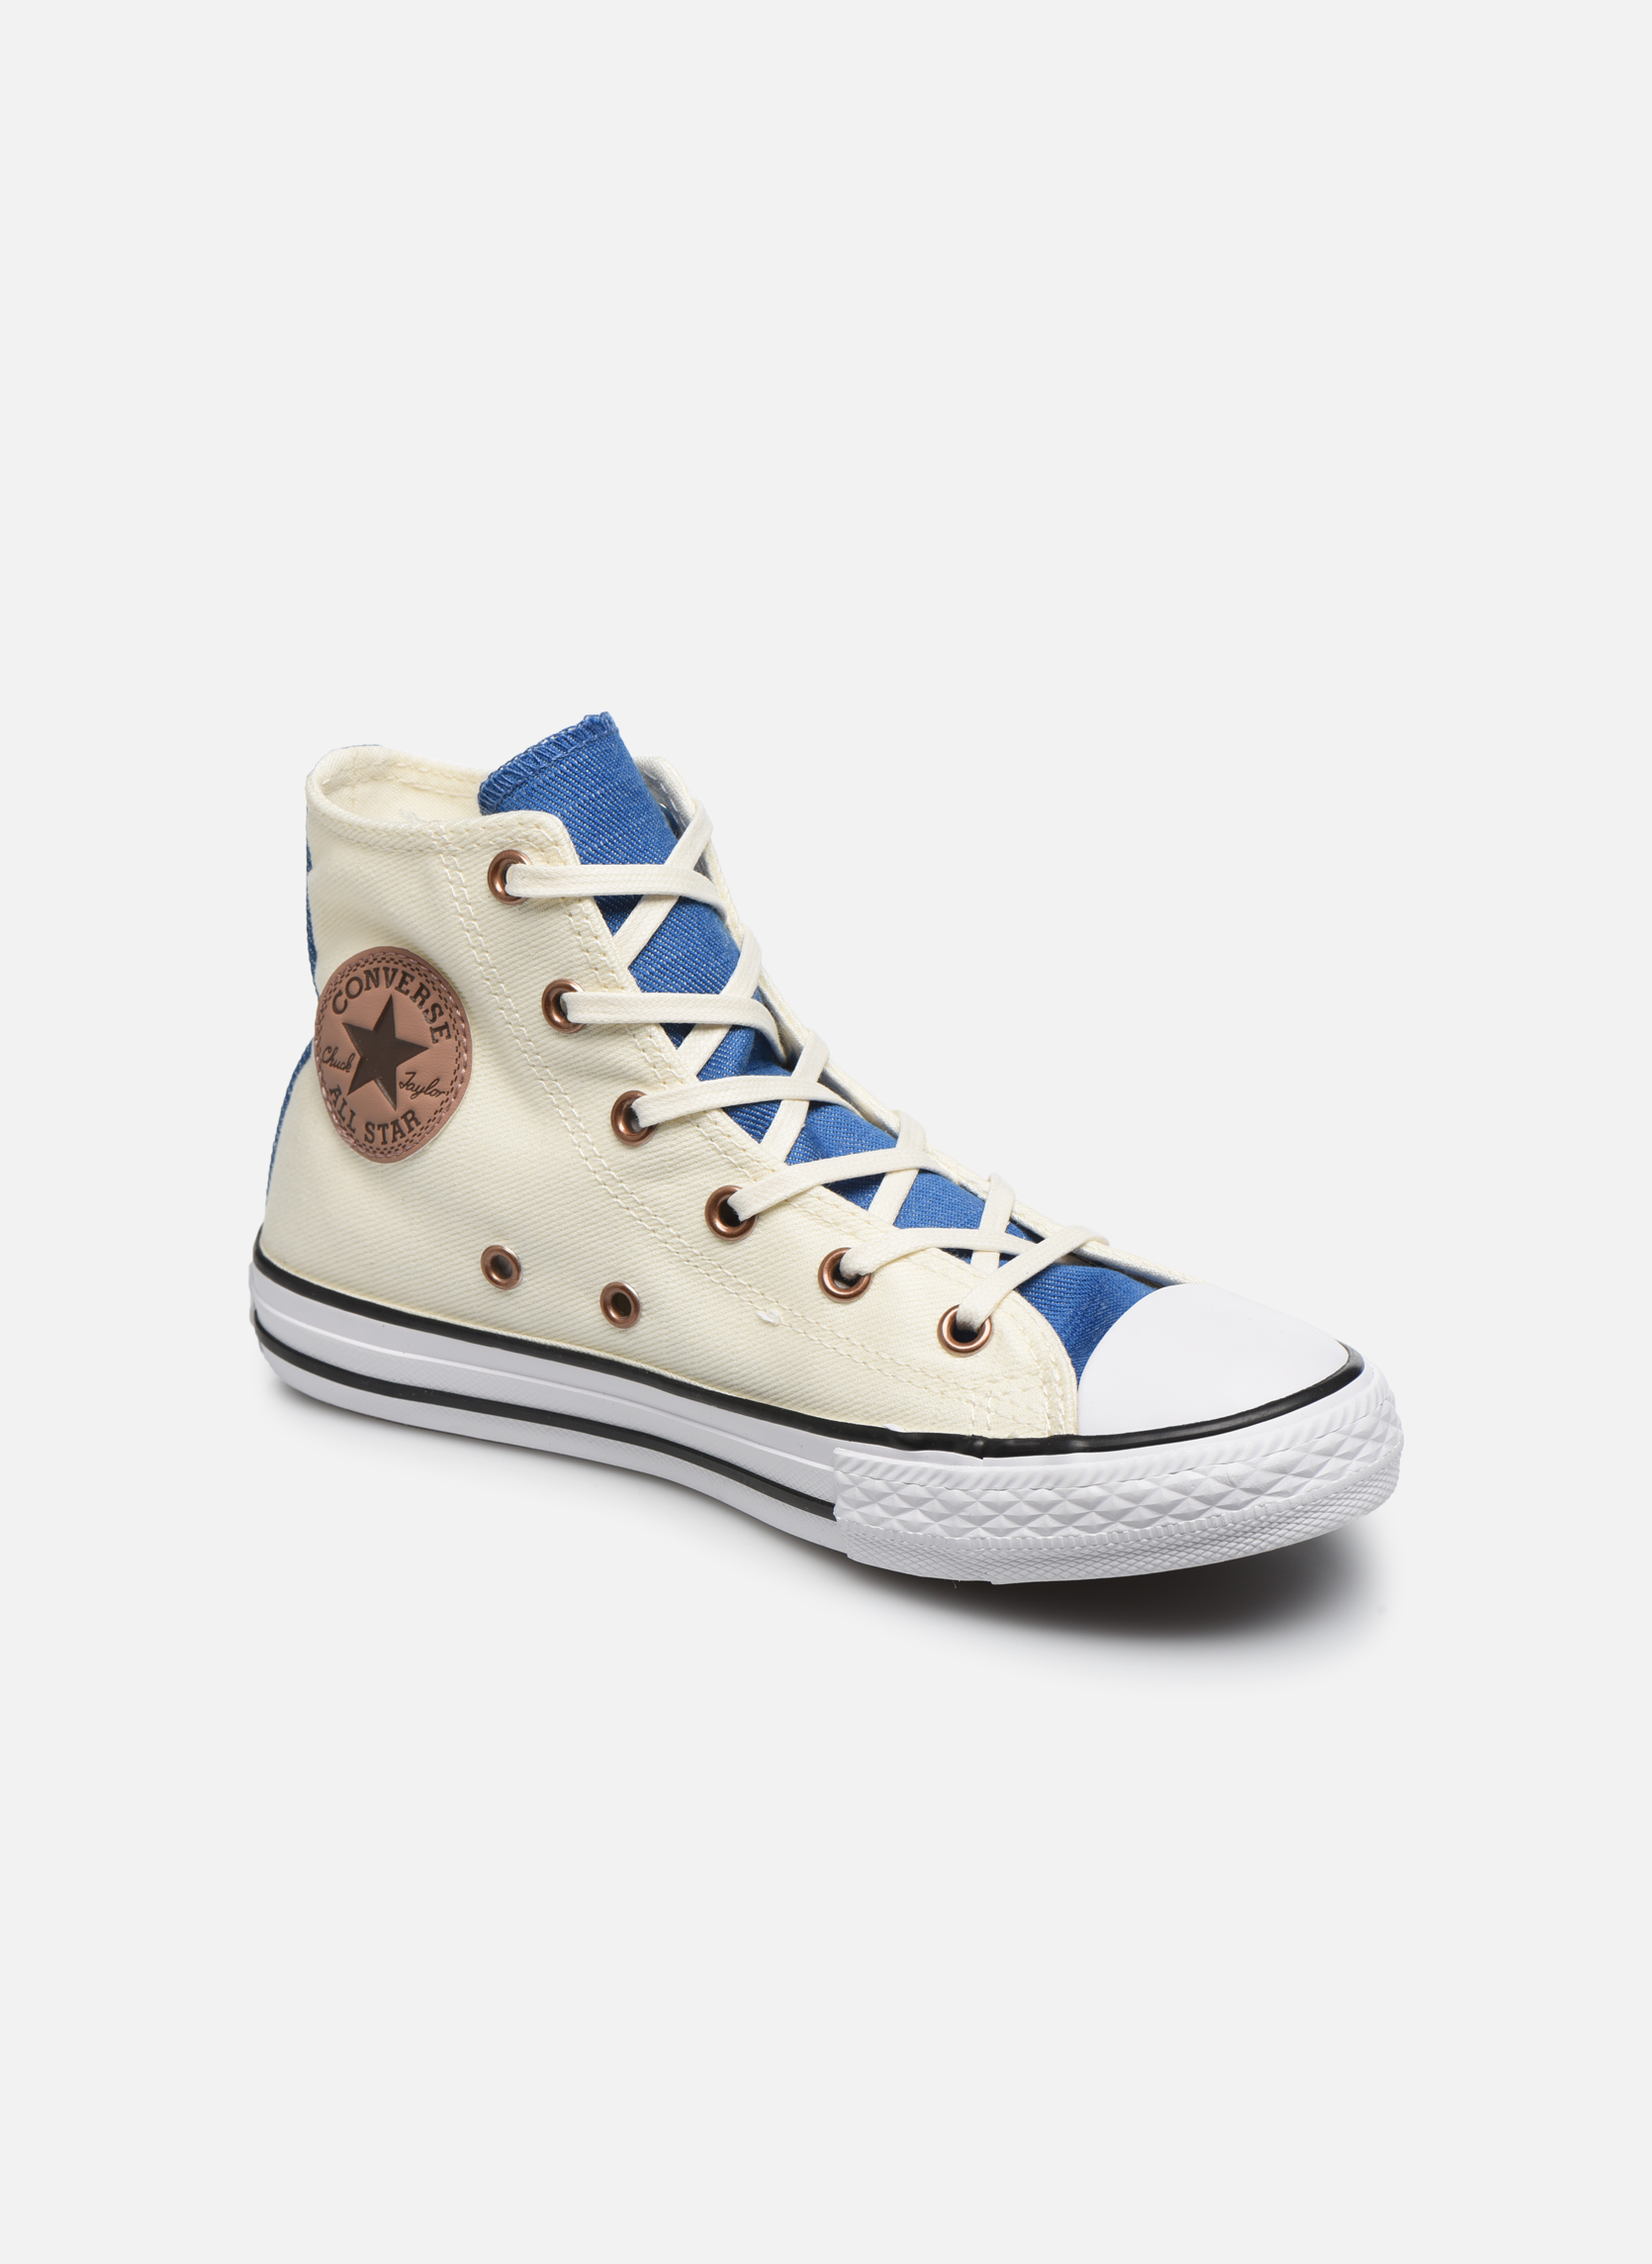 Sneakers Barn Chuck Taylor All Star Hi Two Color Chambray